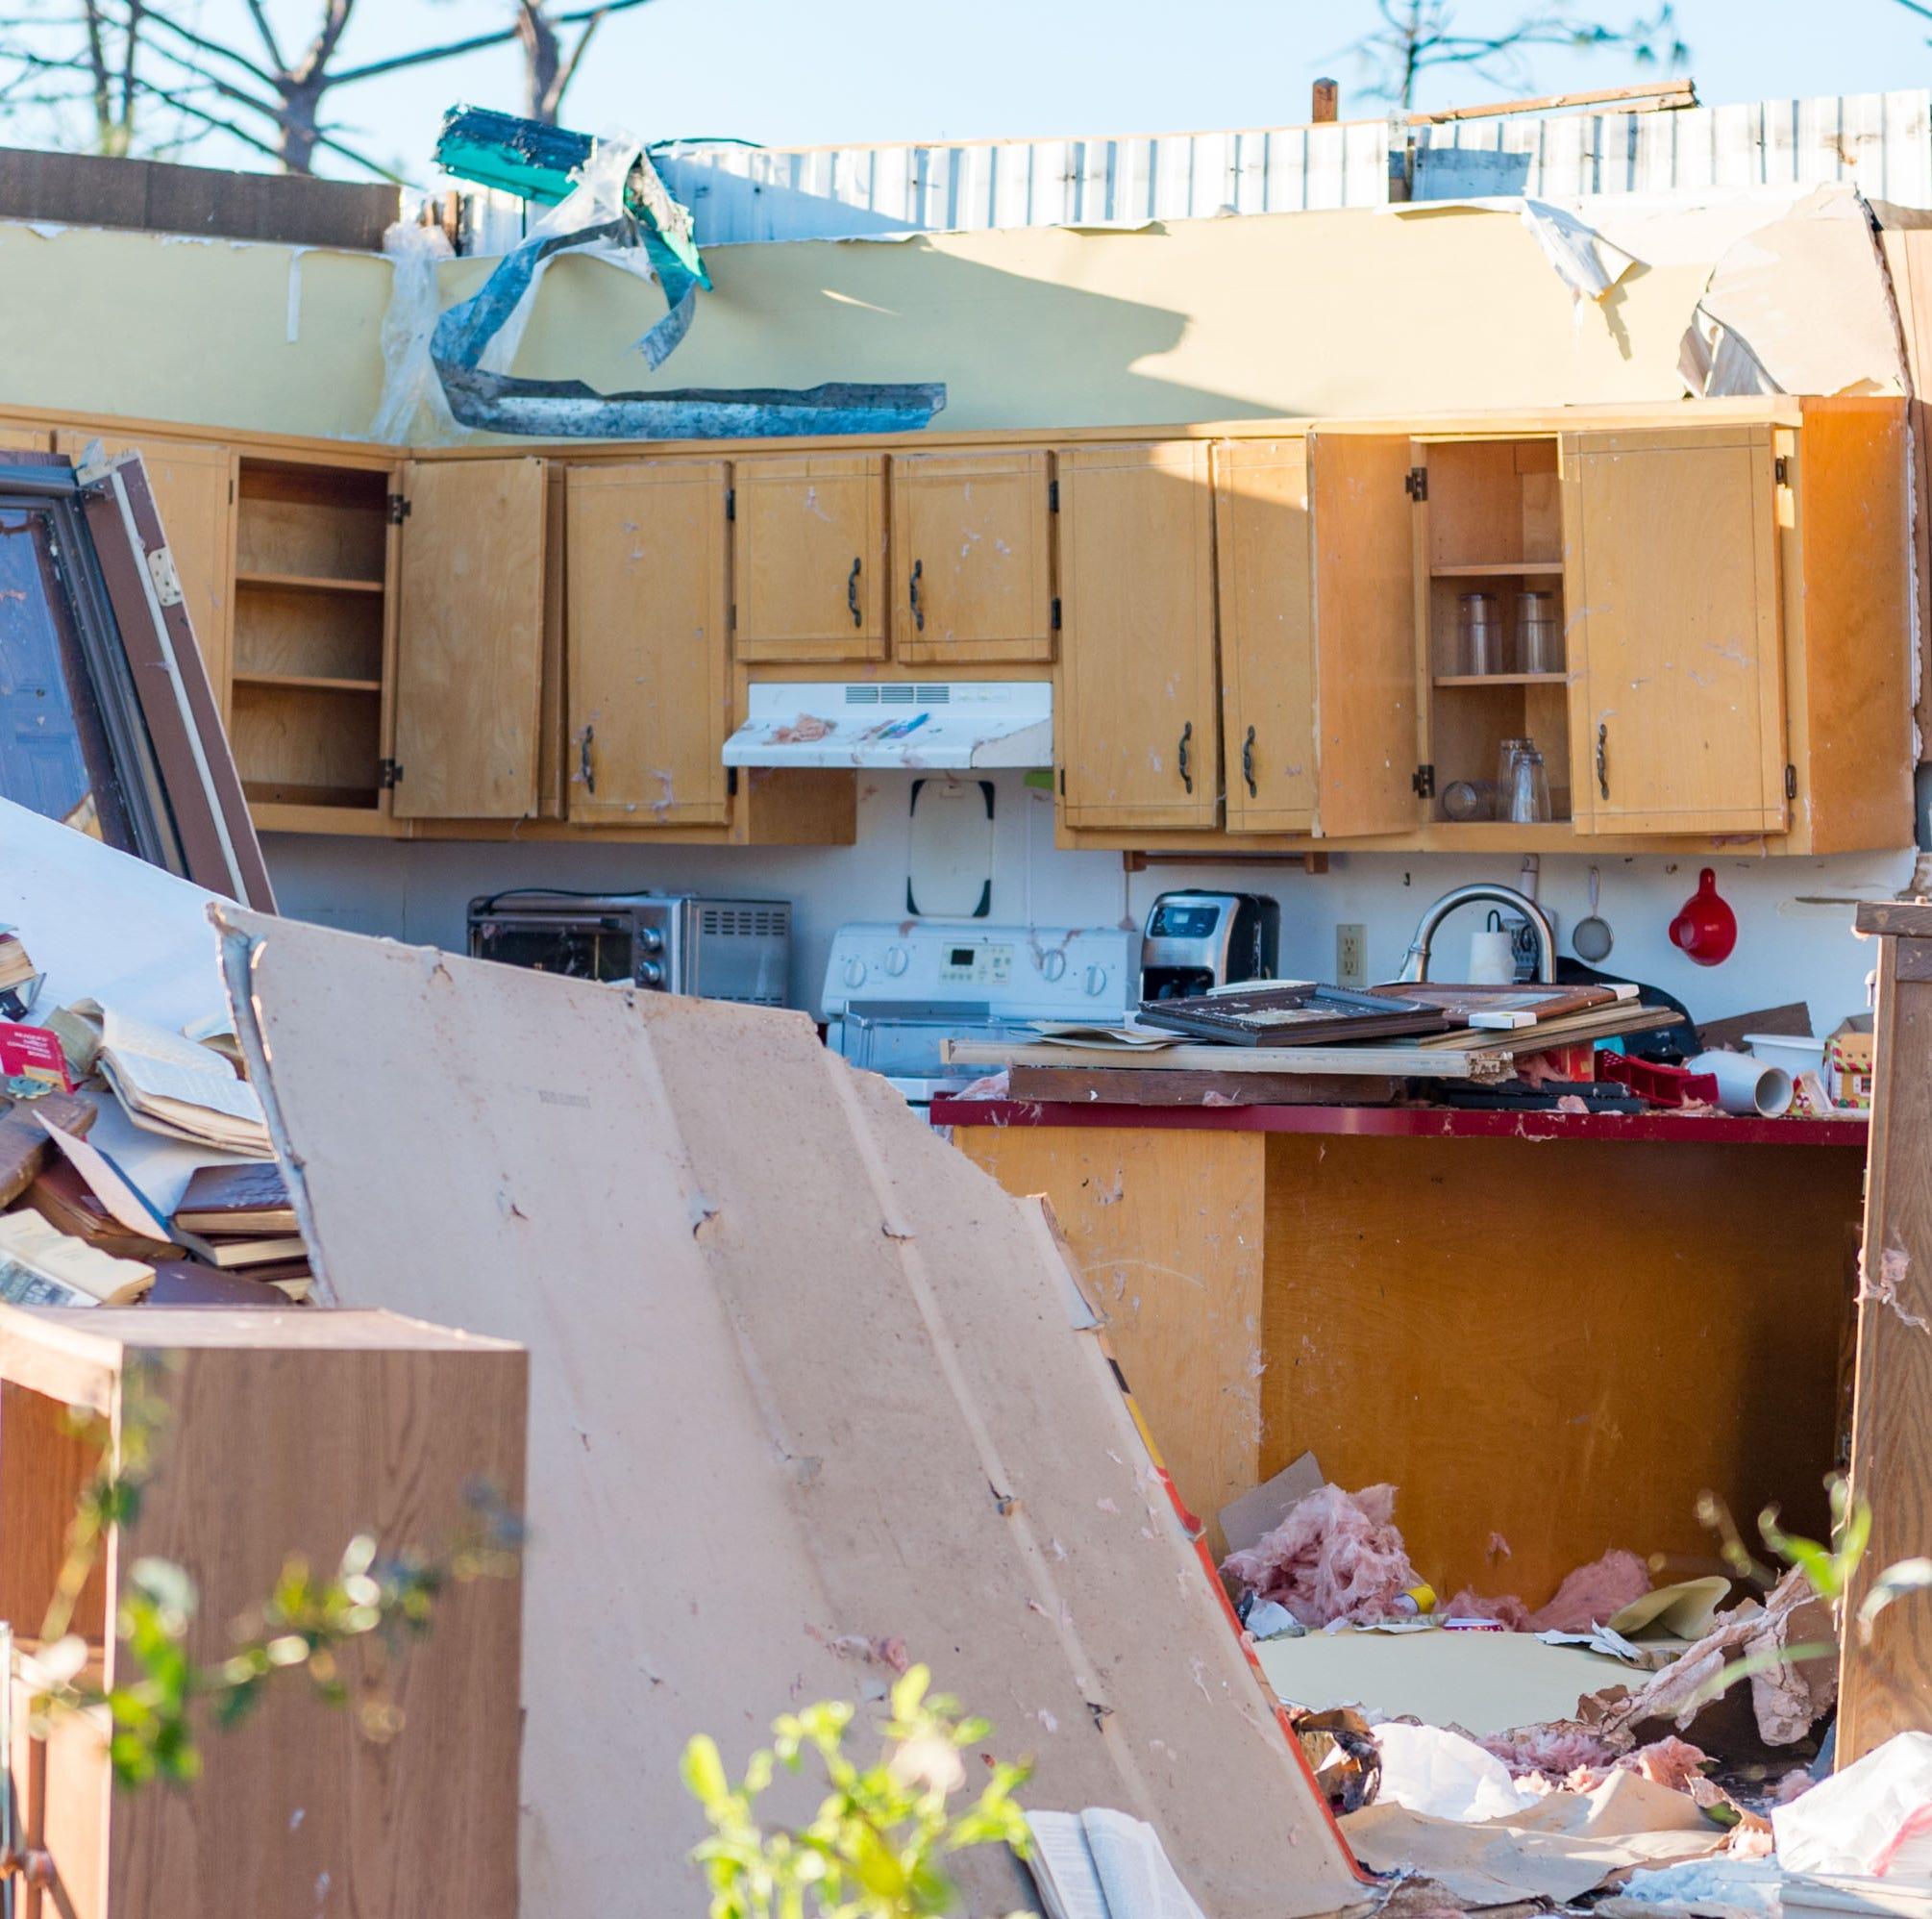 Widespread destruction is left behind in the wake of Hurricane Michael across Panama City, FL.  Saturday, Oct. 13, 2018.